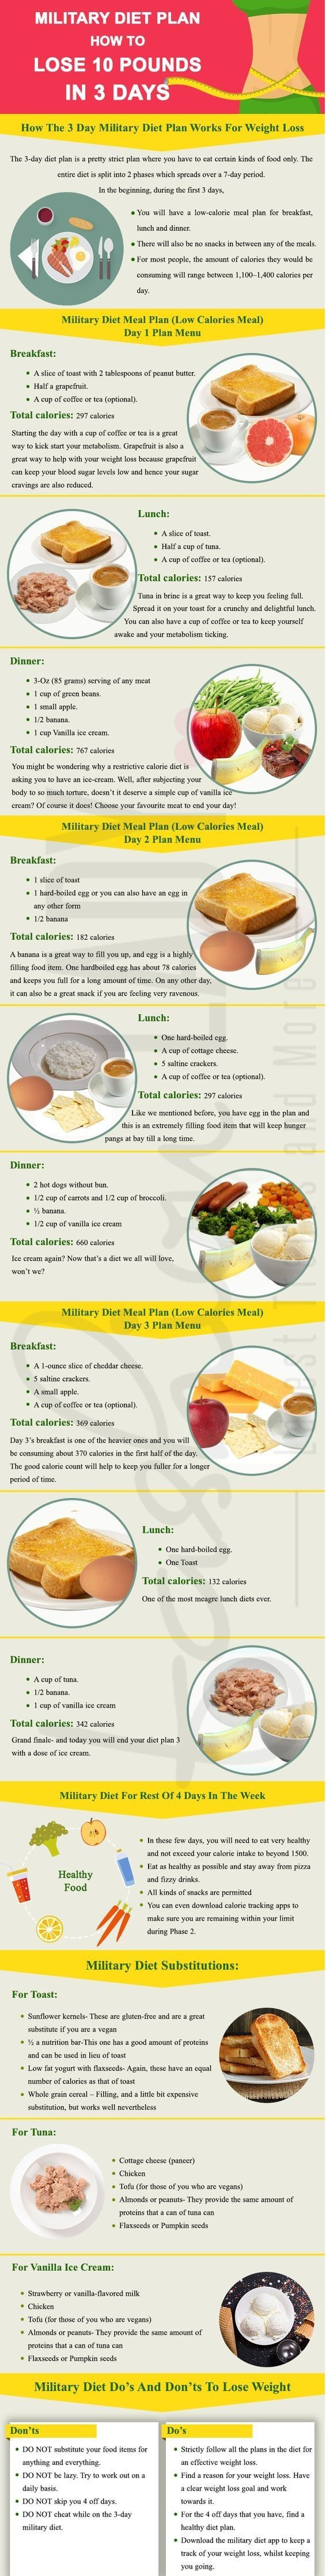 The plan diet msm picture 10